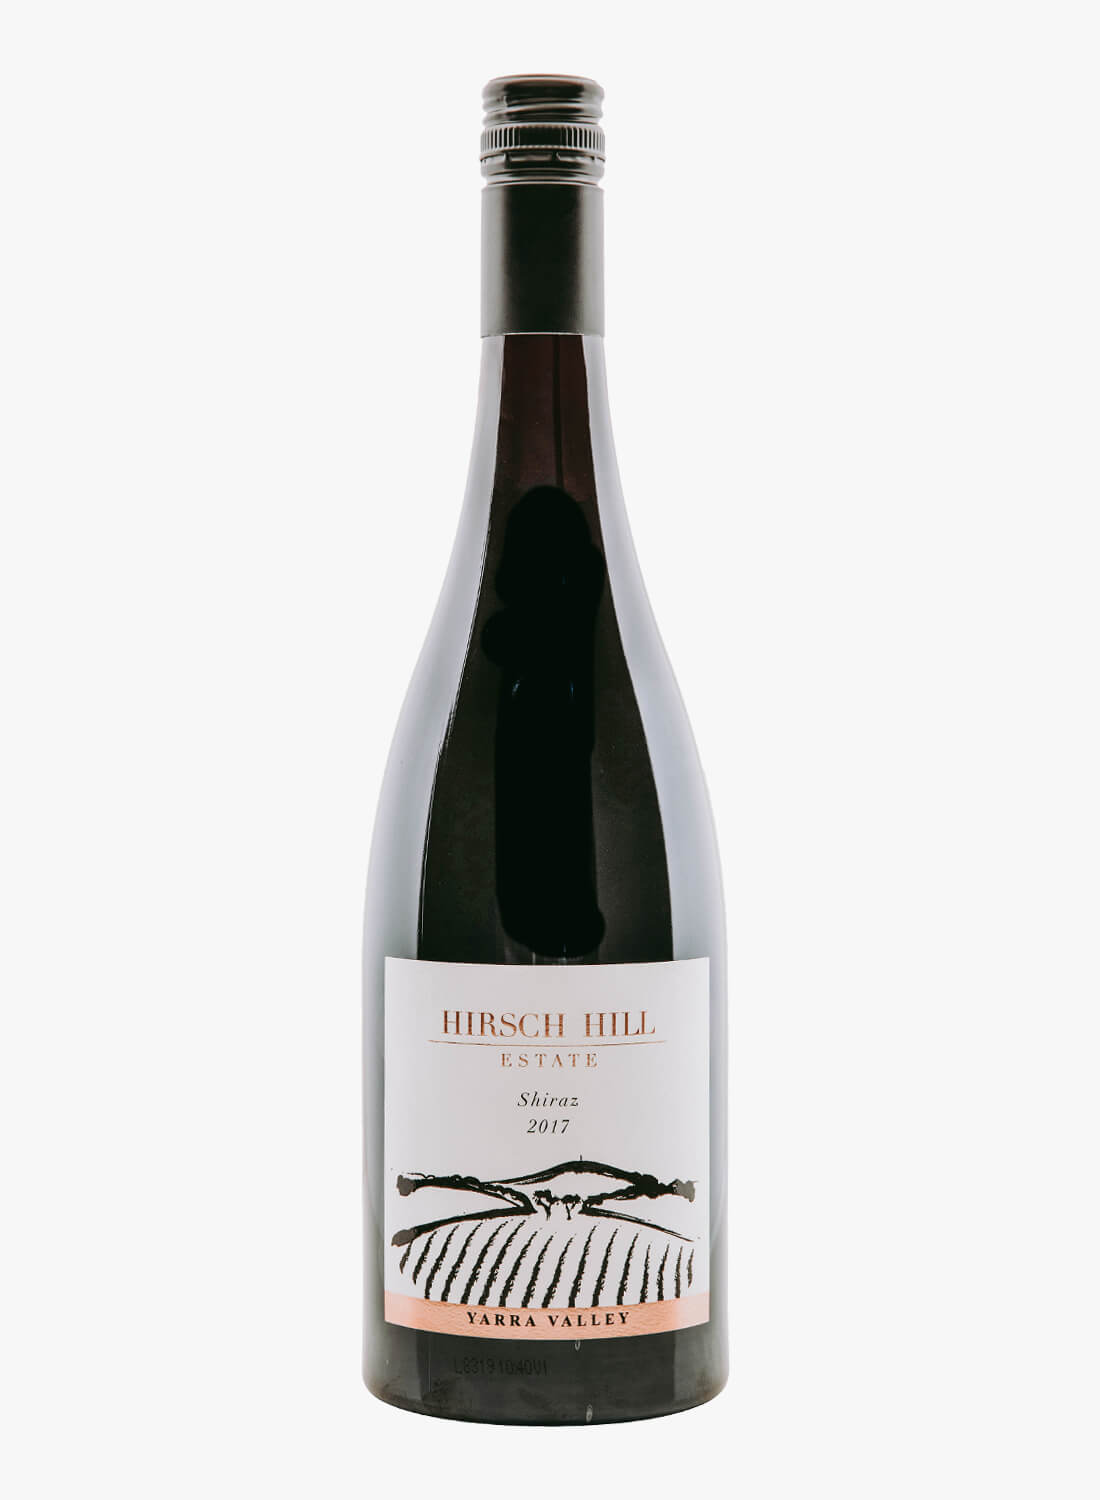 Hirsch Hill Shiraz 2017 - Shiraz 2017 wine